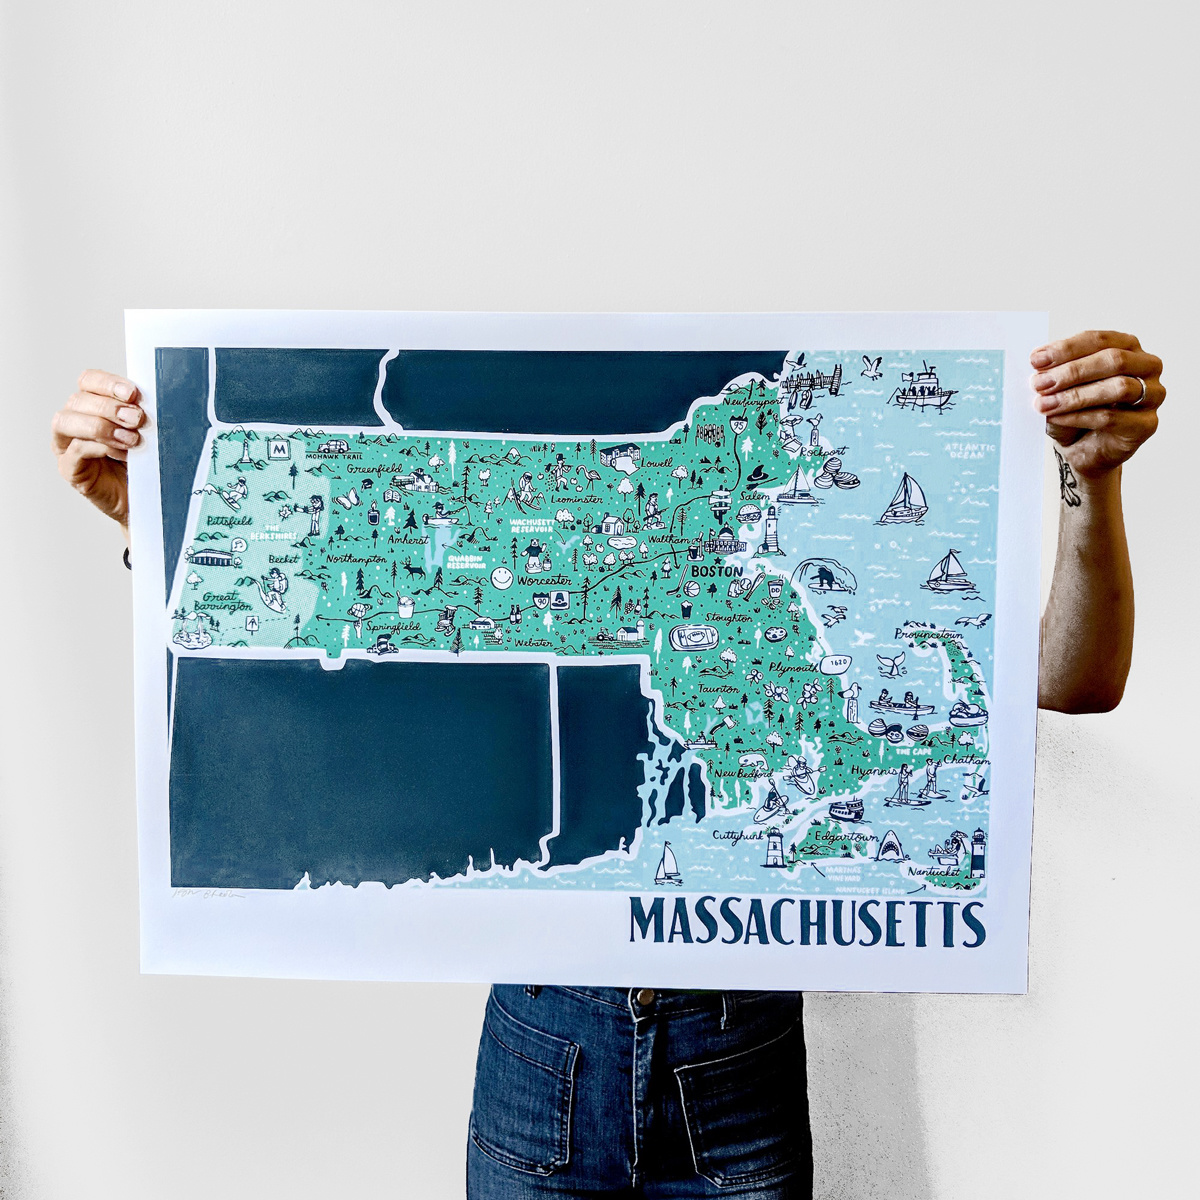 Brainstorm Print and Design - BS Brainstorm - Massachusetts Map, 11 x 14 inch Print